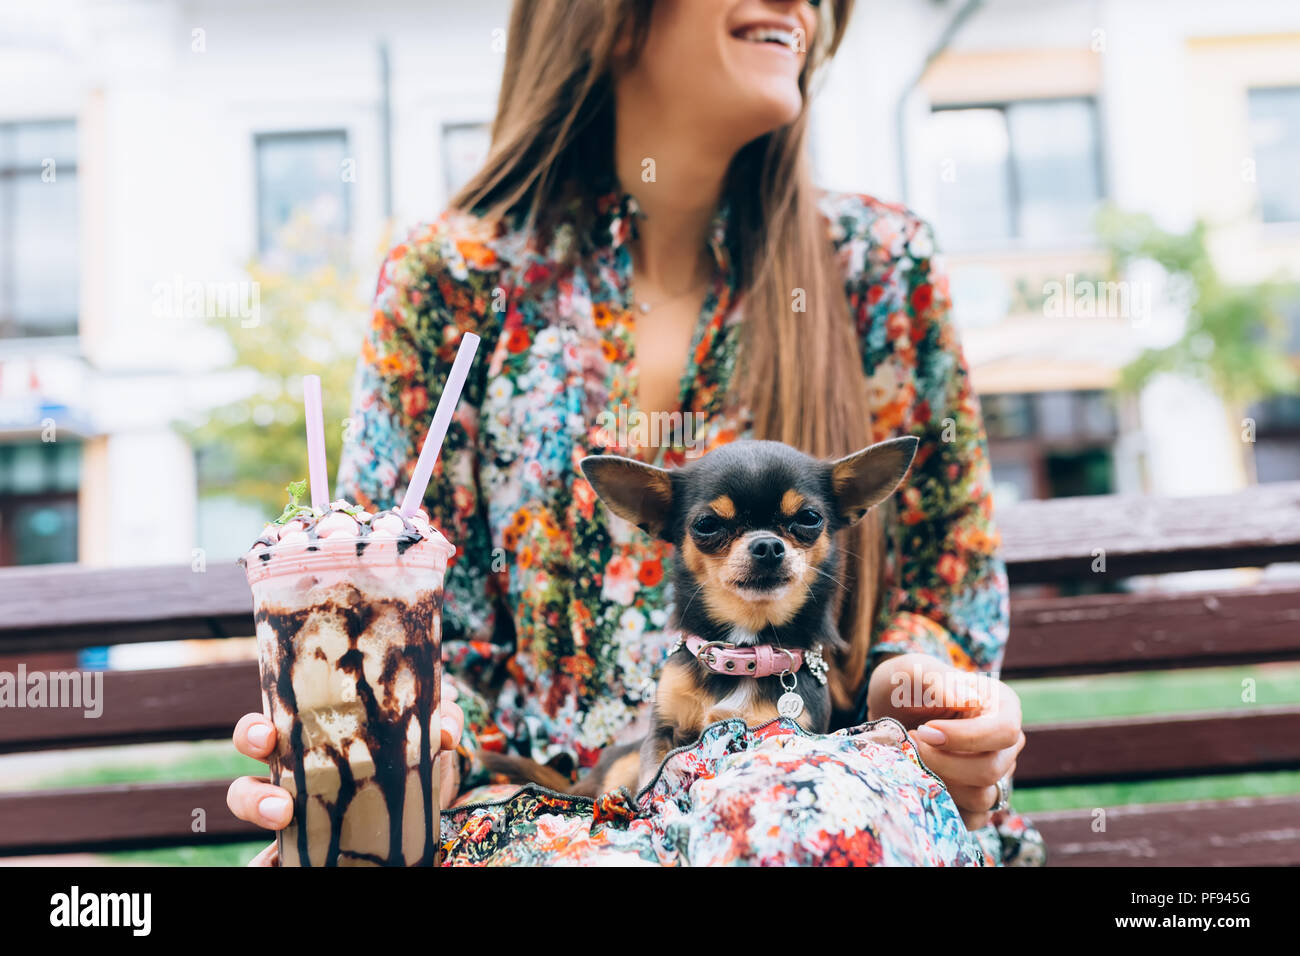 Young woman in sunglasses with little puppy. Outdoor lifestyle portrait of stylish pretty smiling female and her small dog. - Stock Image